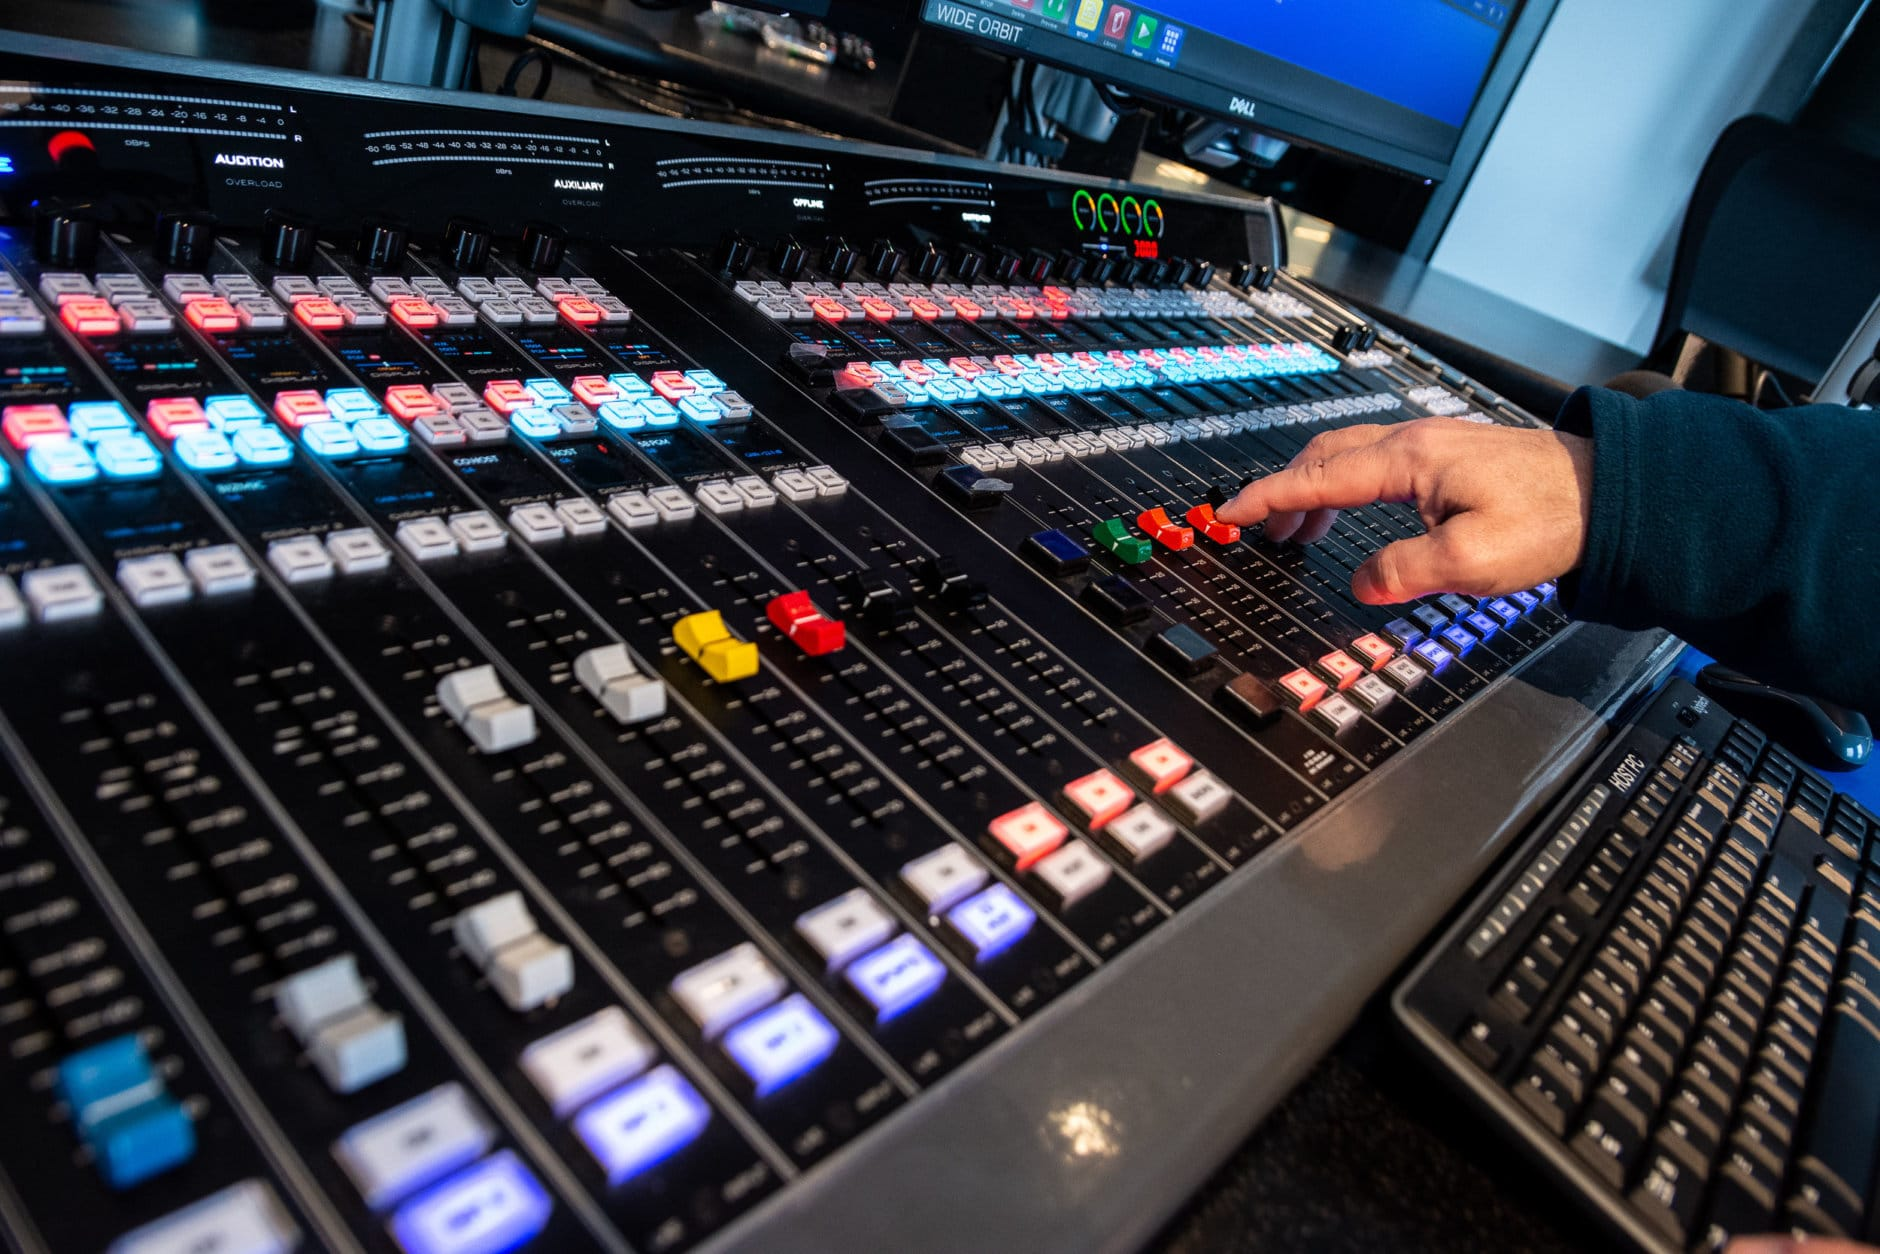 A close-up view of the main control board in WTOP's new Glass-Enclosed Nerve Center. With this audio mixer, an anchor can feed live audio from any of the 47 editing stations throughout the new office, or pre-recorded news reports from WTOP's affiliates. (WTOP/Alejandro Alvarez)